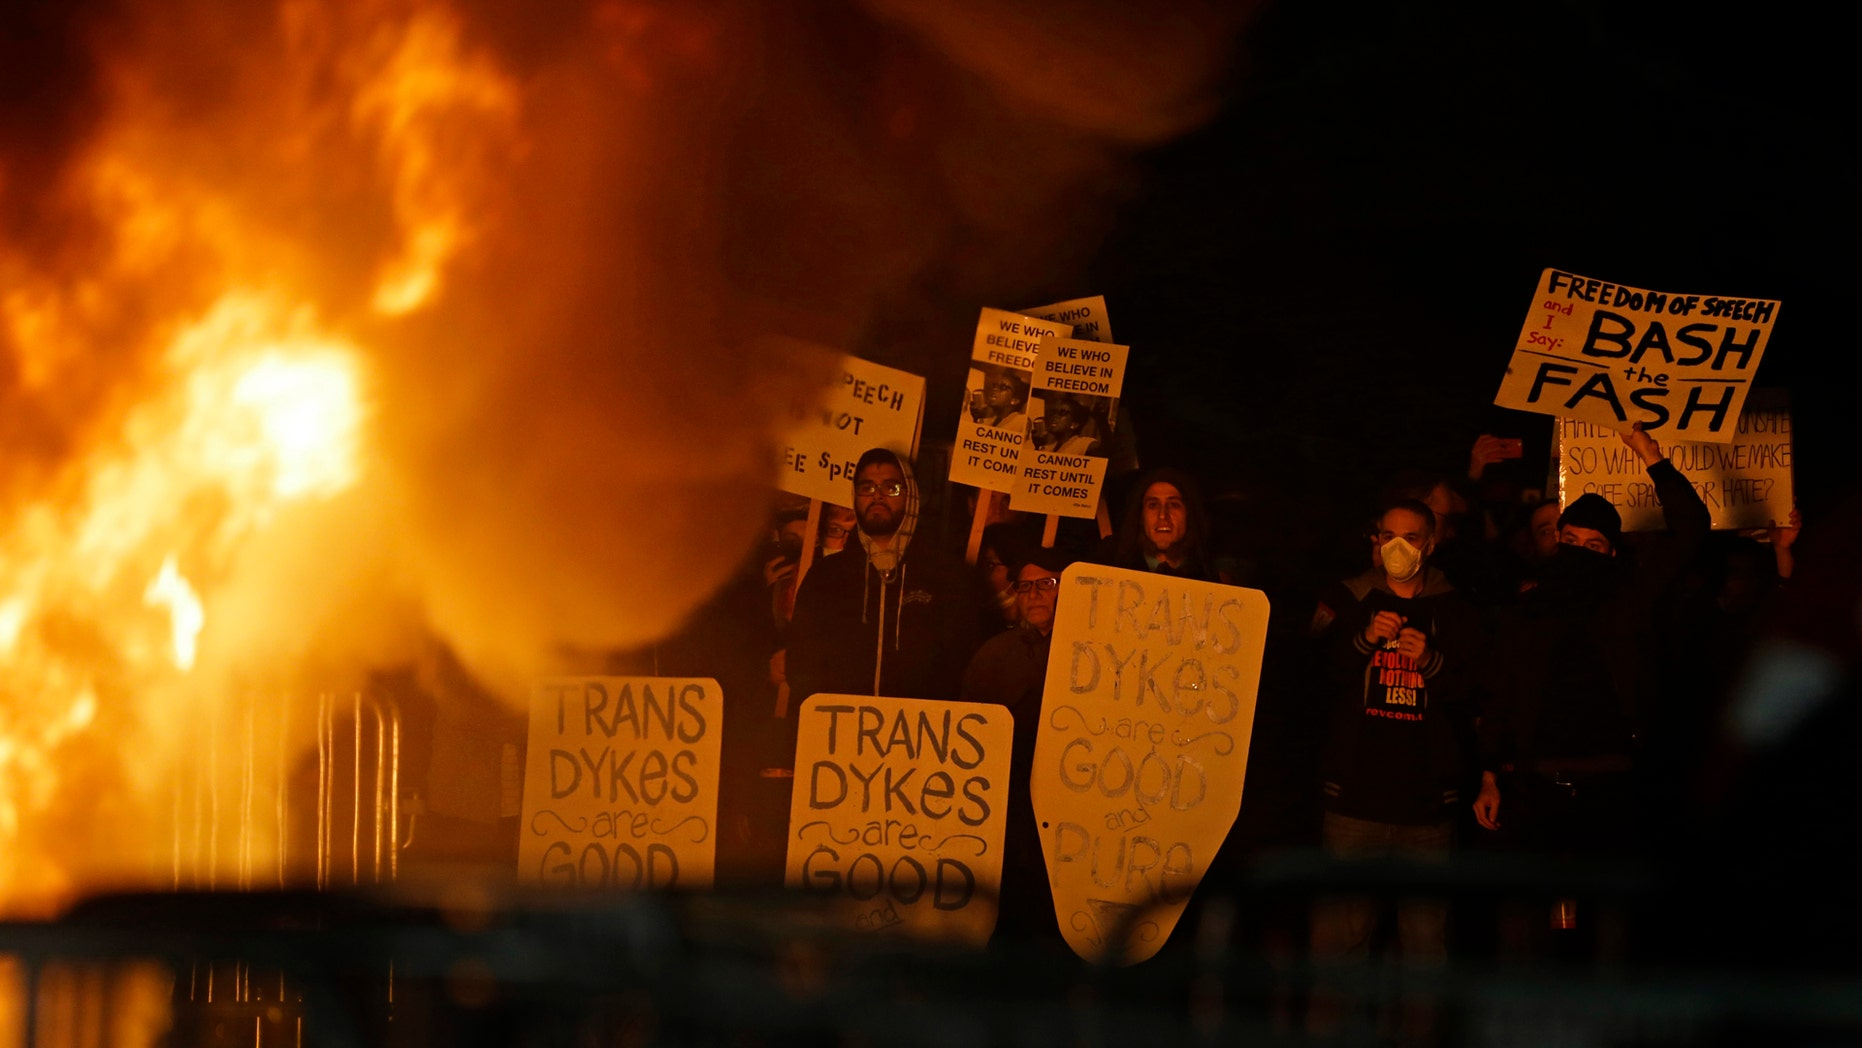 Protestors watch a bonefire on Sproul Plaza during a rally against the scheduled speaking appearance by Breitbart News editor Milo Yiannopoulos on the University of California at Berkeley campus on Wednesday, Feb. 1, 2017, in Berkeley, Calif. The event was canceled out of safety concerns after protesters hurled smoke bombs, broke windows and started a bonfire. (AP Photo/Ben Margot)